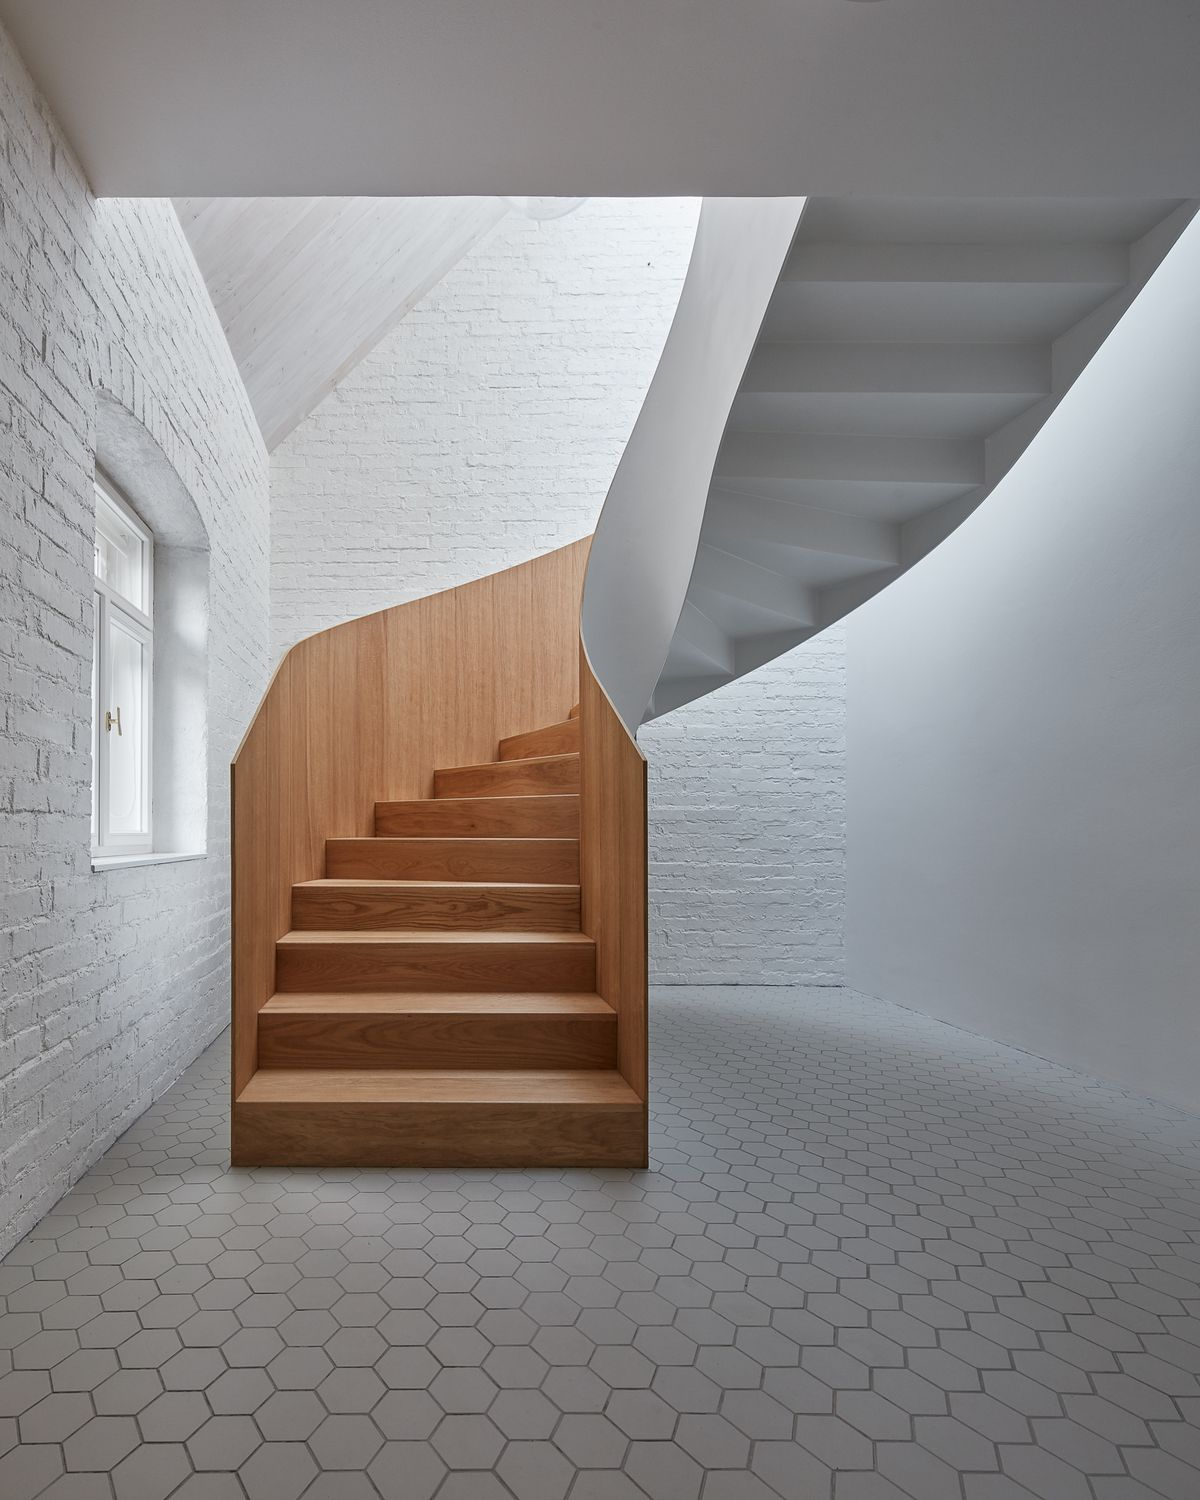 Spiral staircase made from pale timber in an all-white room.